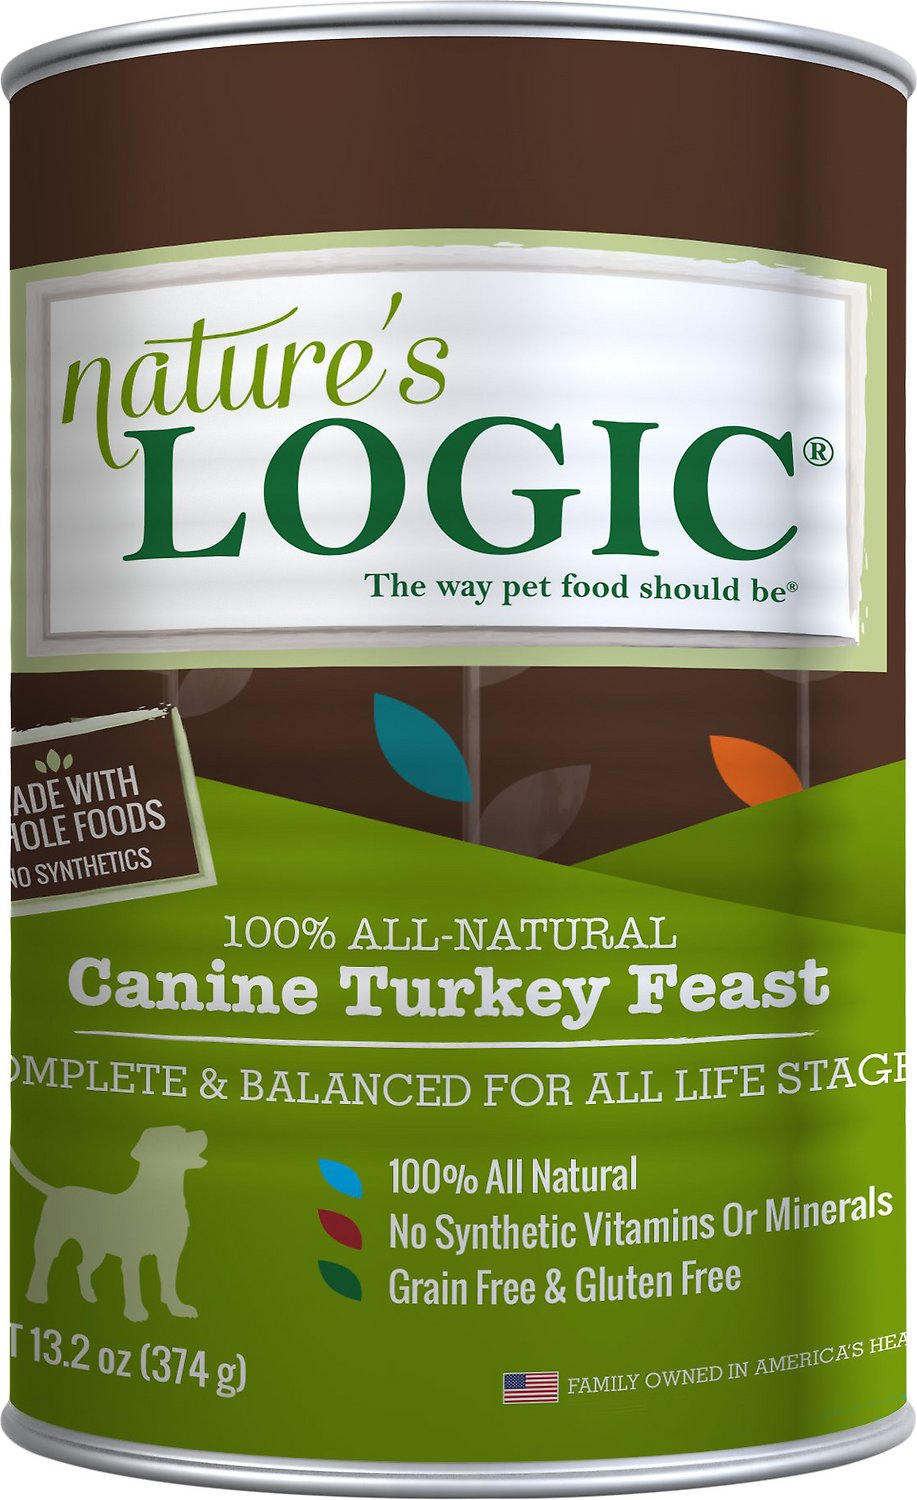 Nature's Logic Canine Turkey Feast Grain-Free Canned Dog Food, 13.2 oz